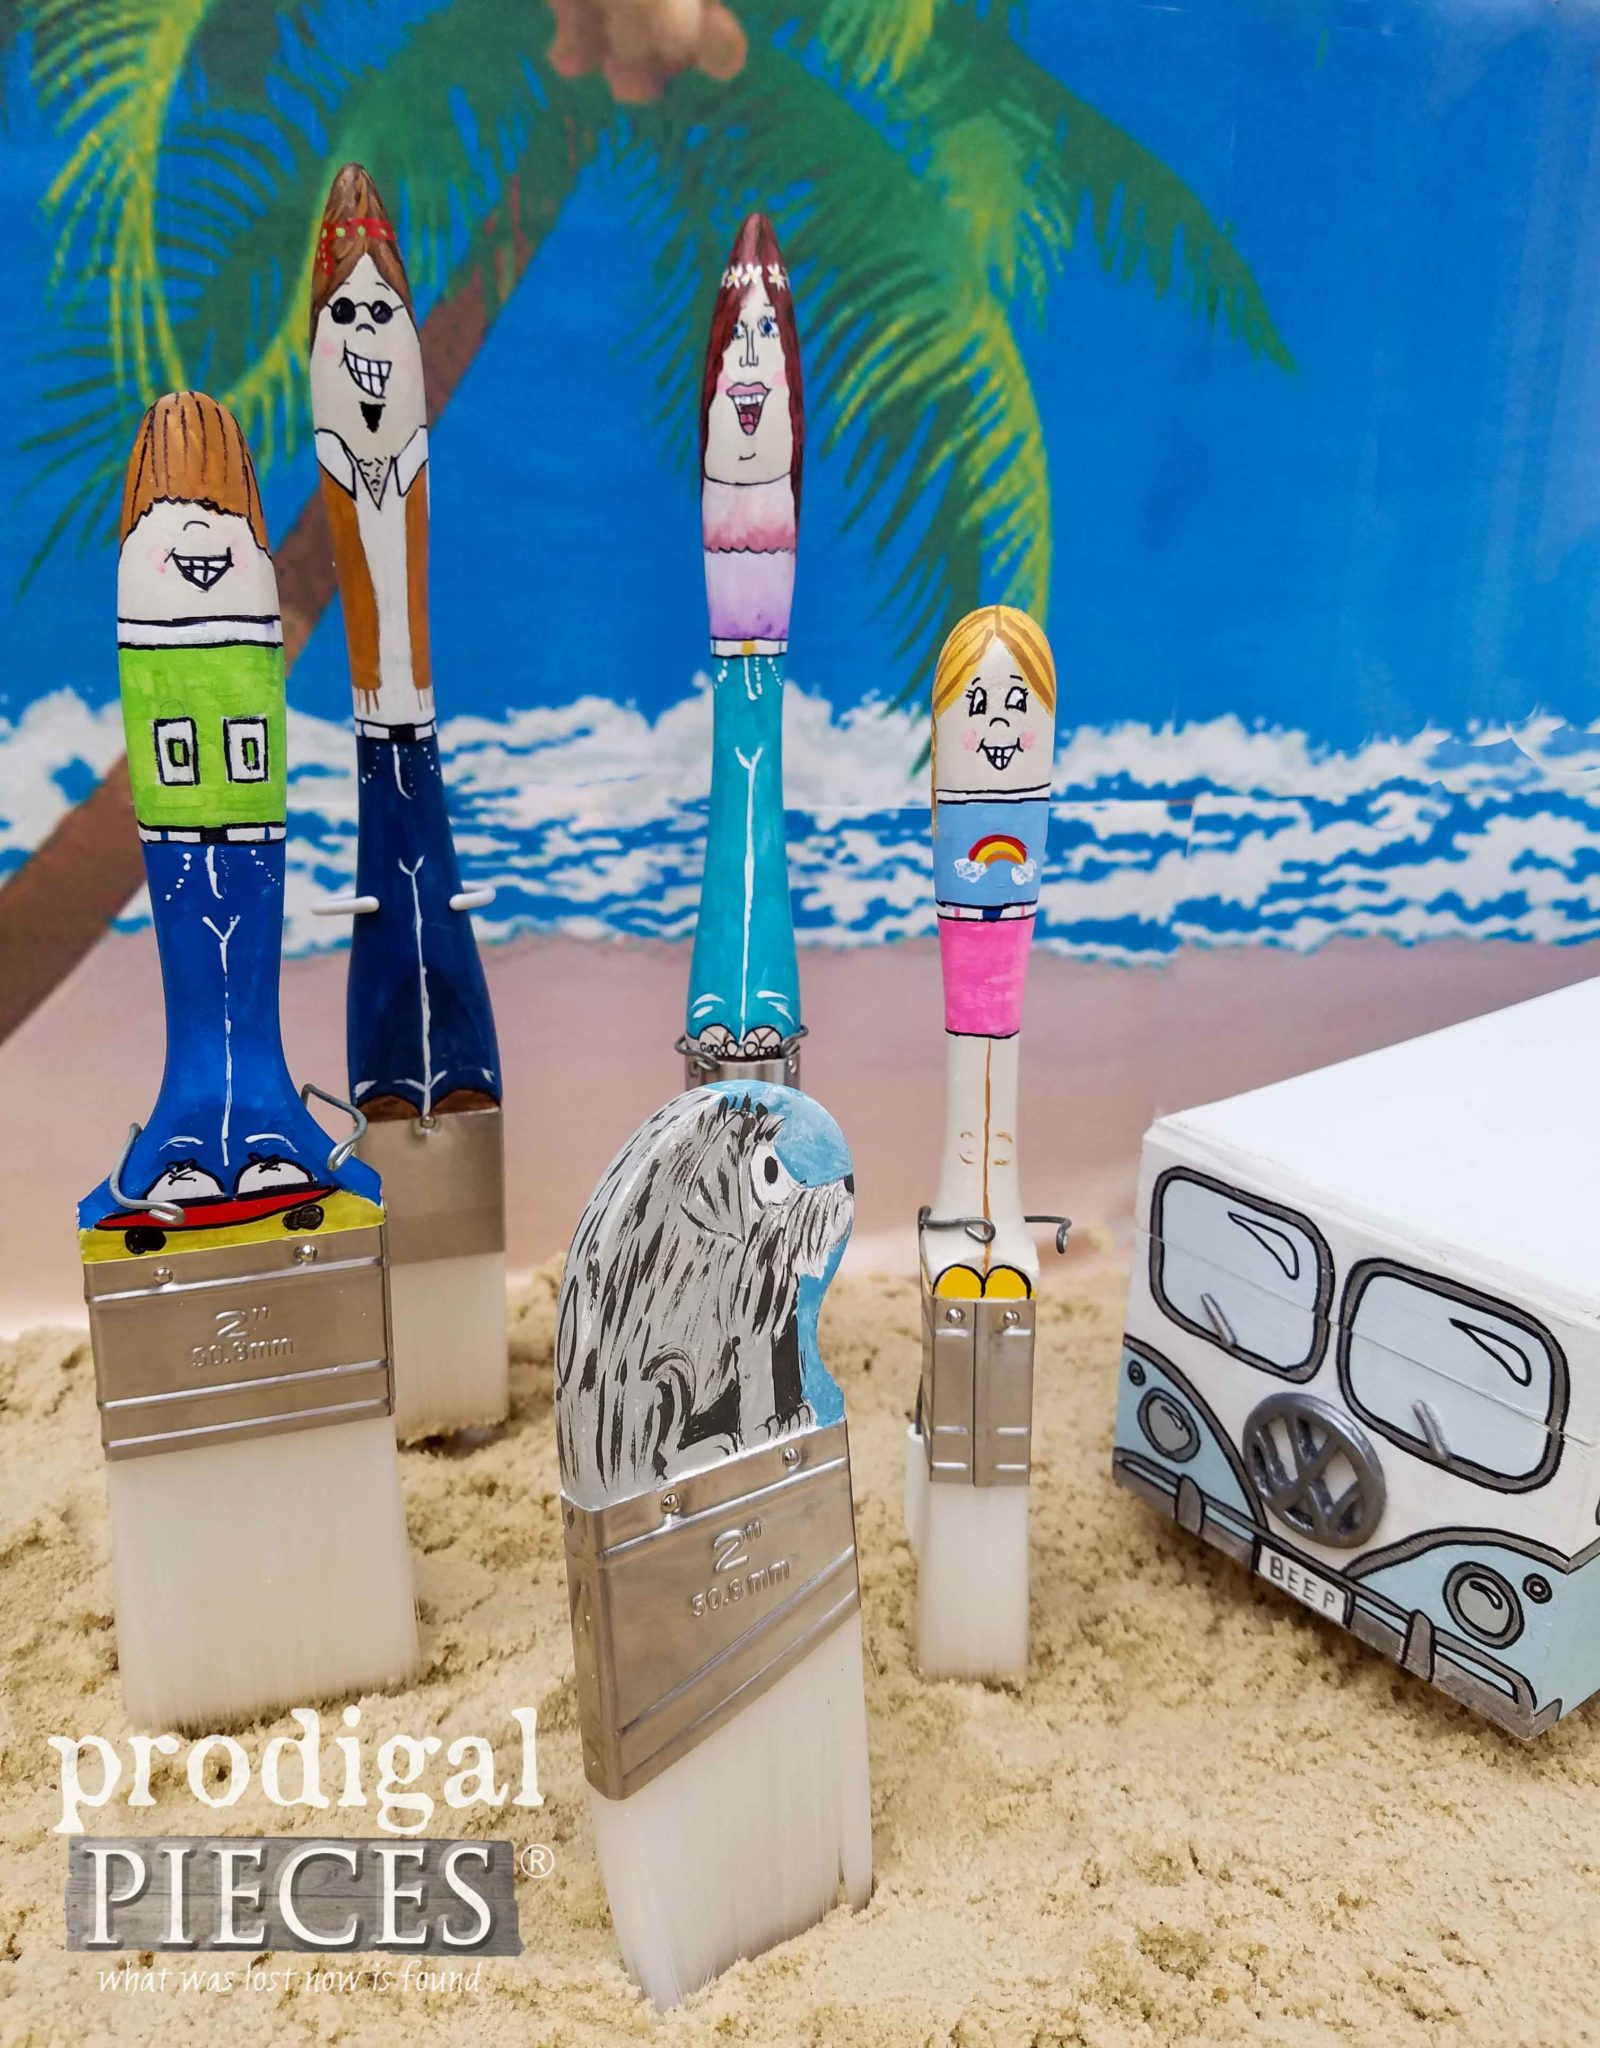 Hippie Paint Brush Family with Volkswagen Bus by Larissa of Prodigal Pieces | prodigalpieces.com